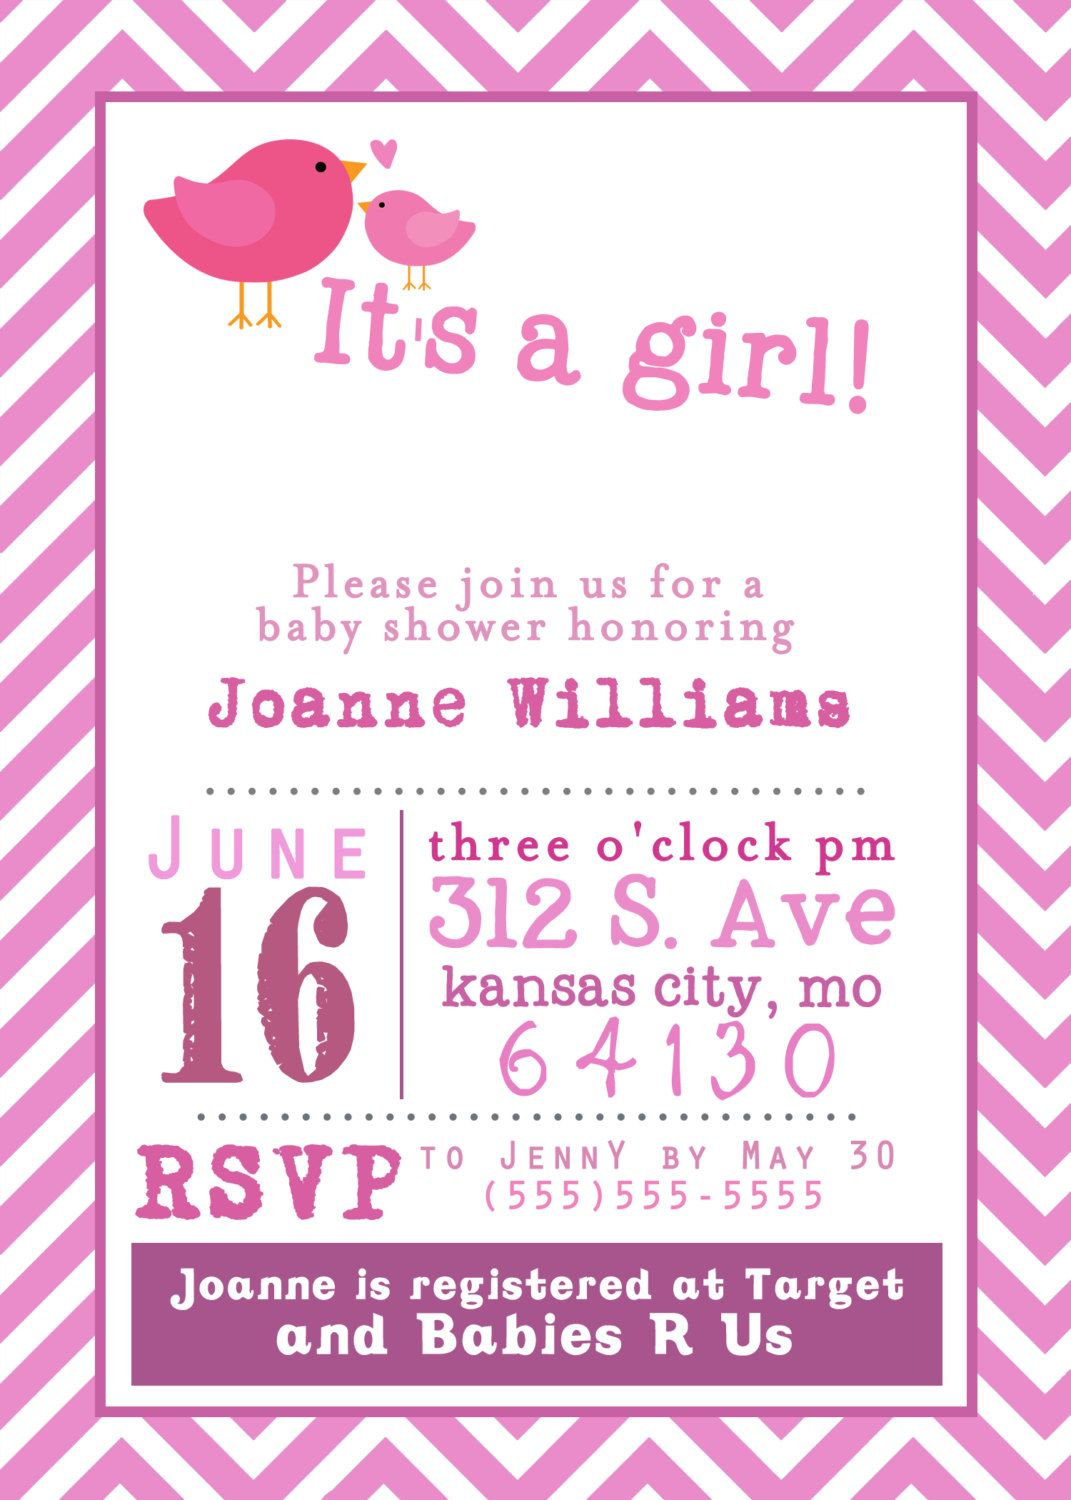 Baby Shower Invitations: Free Printable Baby Shower Invitations ...